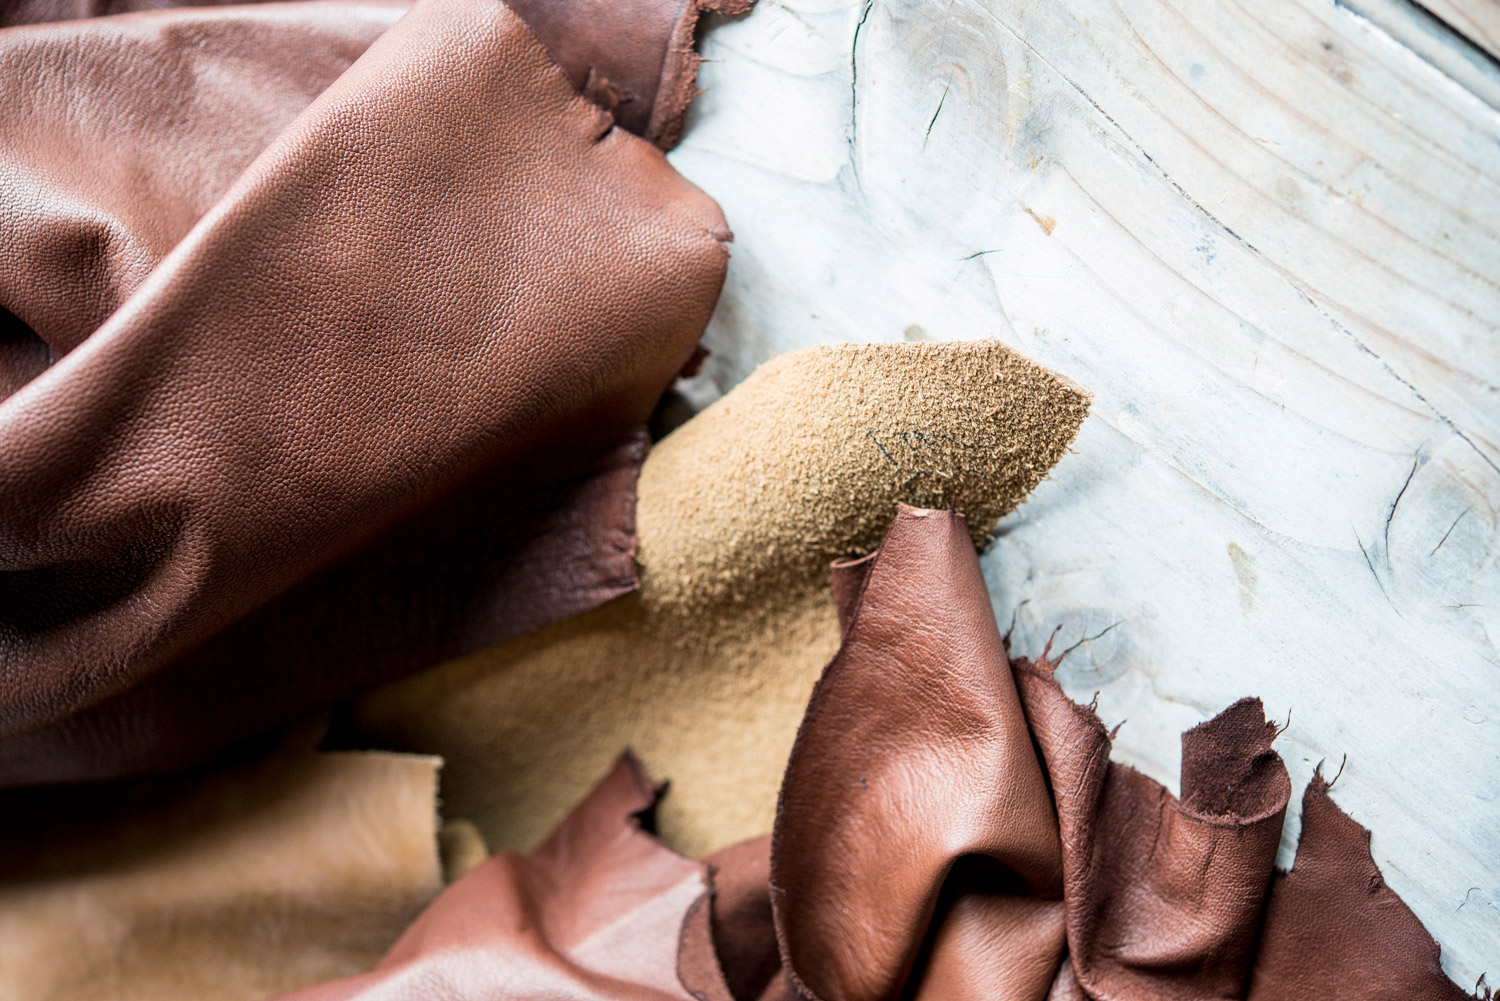 Leather quality is all about the grain, but what's the difference between full grain and genuine leather?